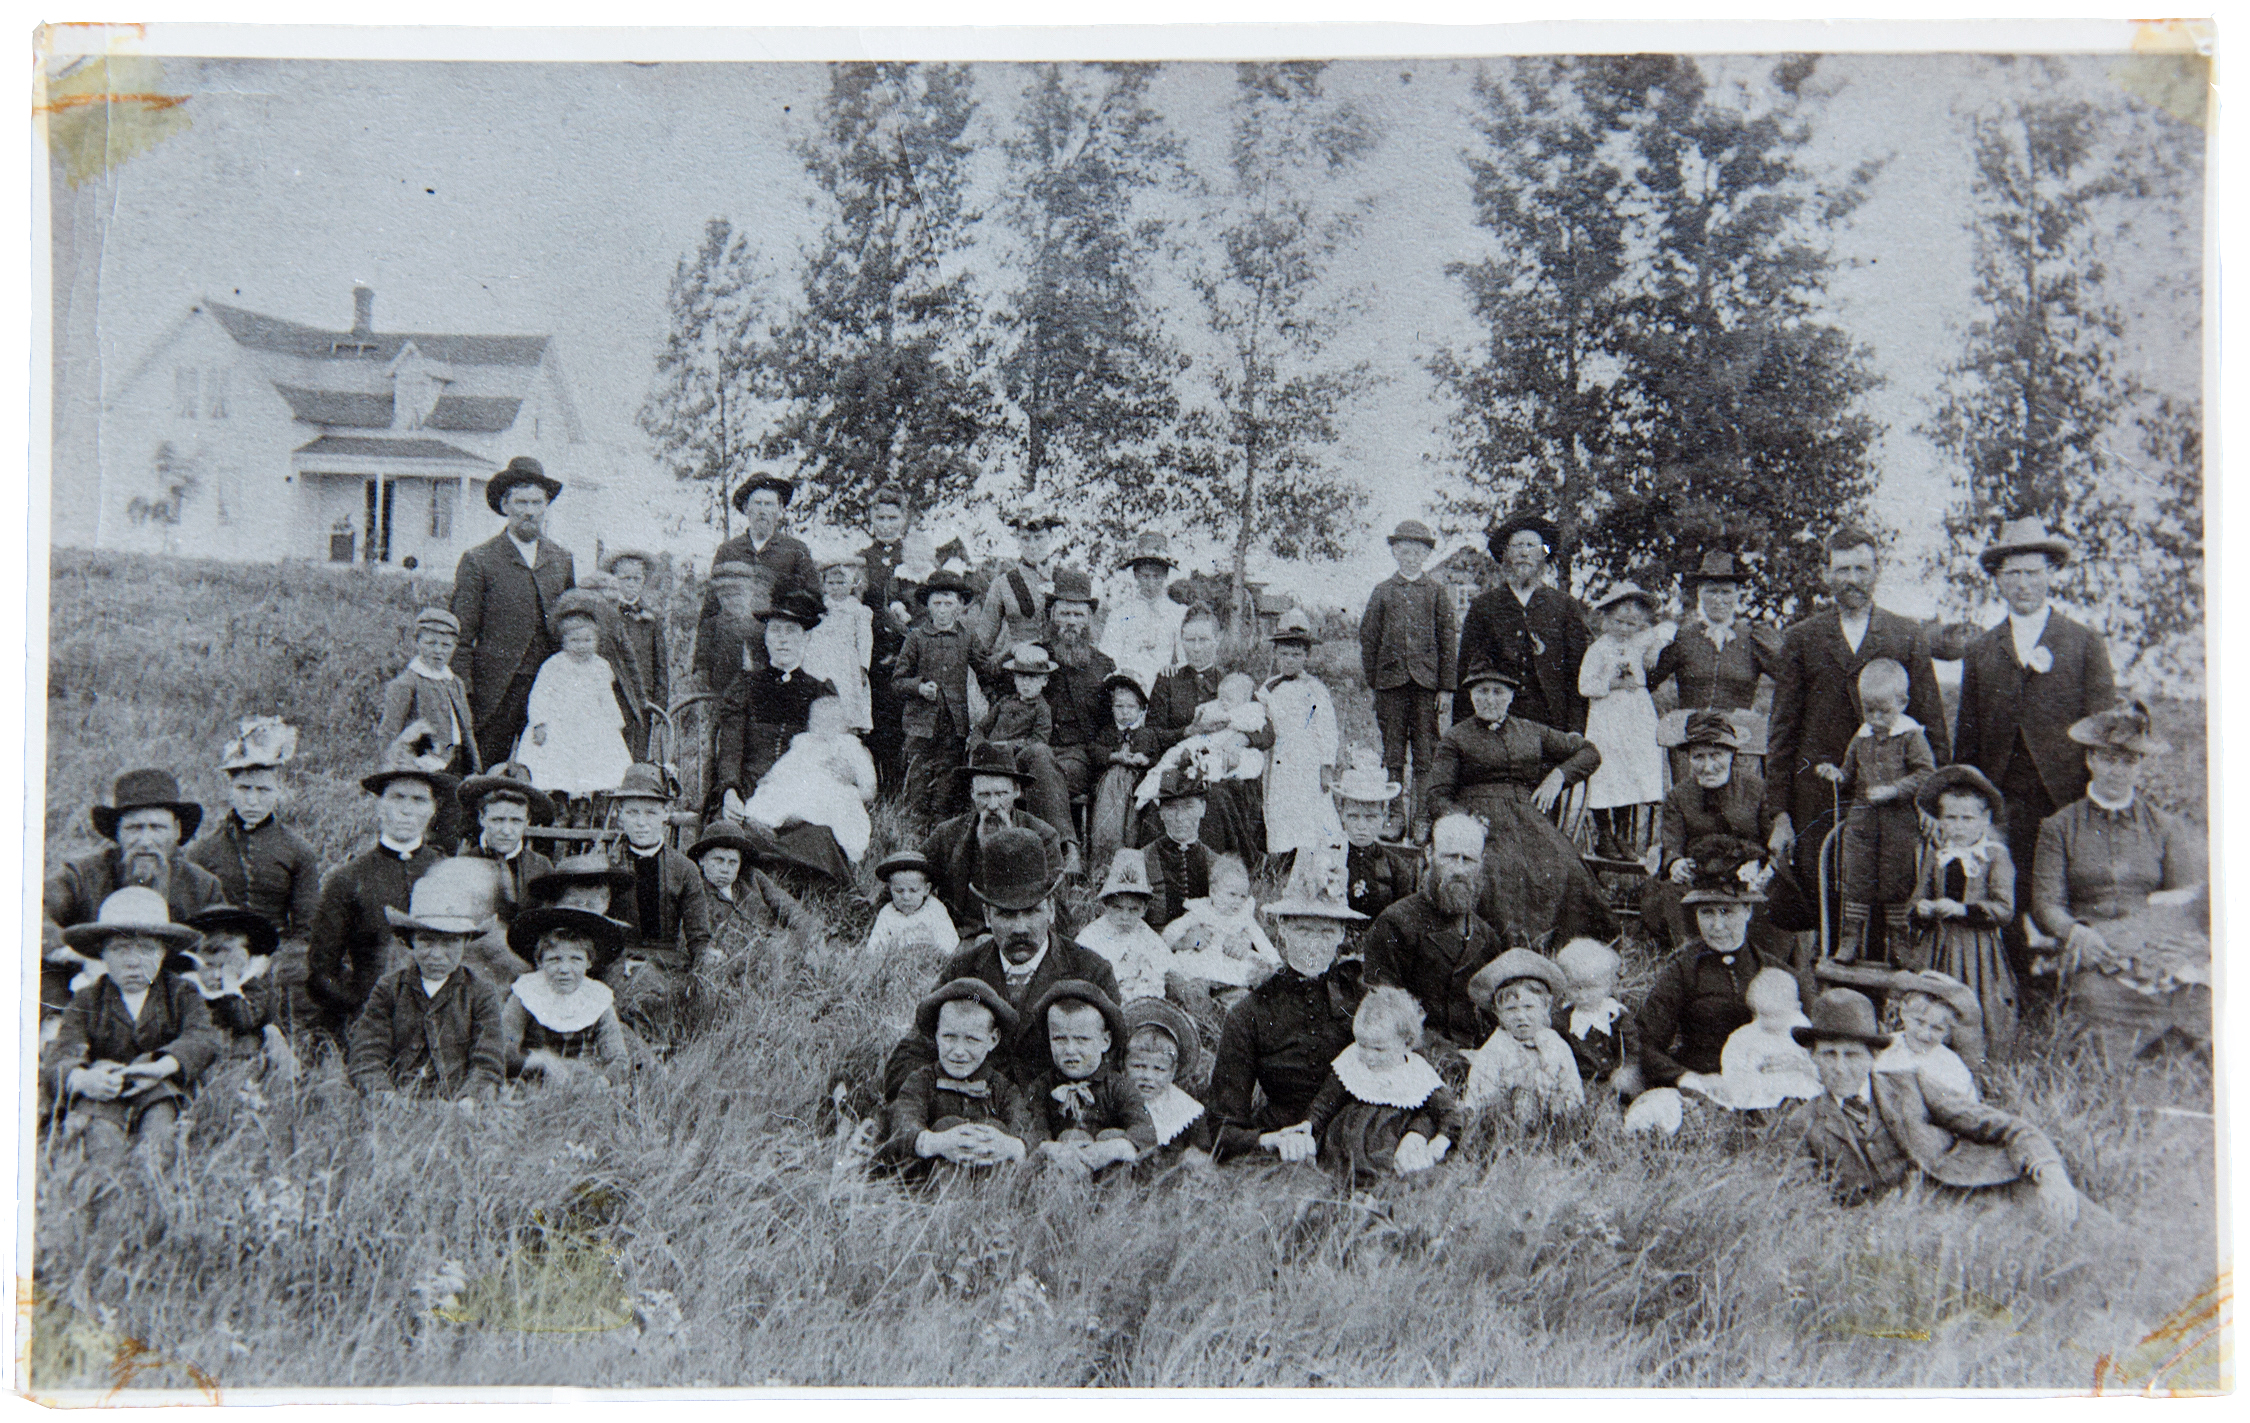 Brothers, sisters and cousins that came to America from Invik, Norway and settled in the Eastern part of South Dakota on Homesteads. Rural Madison, South Dakota 1891